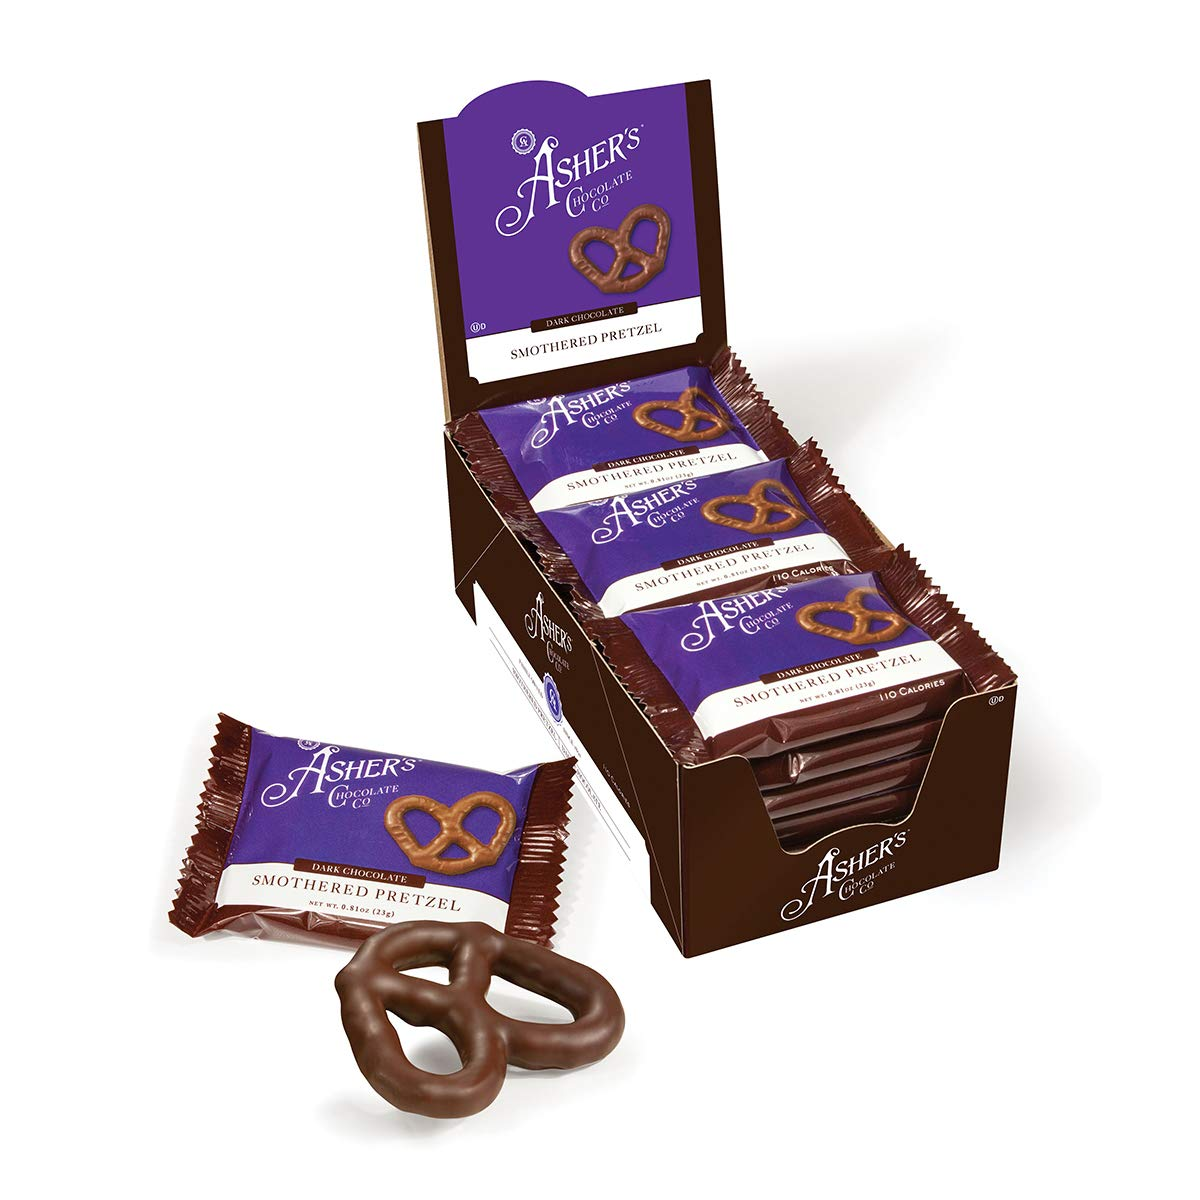 Asher's Chocolate, Chocolate Covered Pretzels, Gourmet Sweet and Salty Candy, Small Batches of Kosher Chocolate, Family Owned Since 1892 (18 count, Dark Chocolate) by Asher's Chocolates